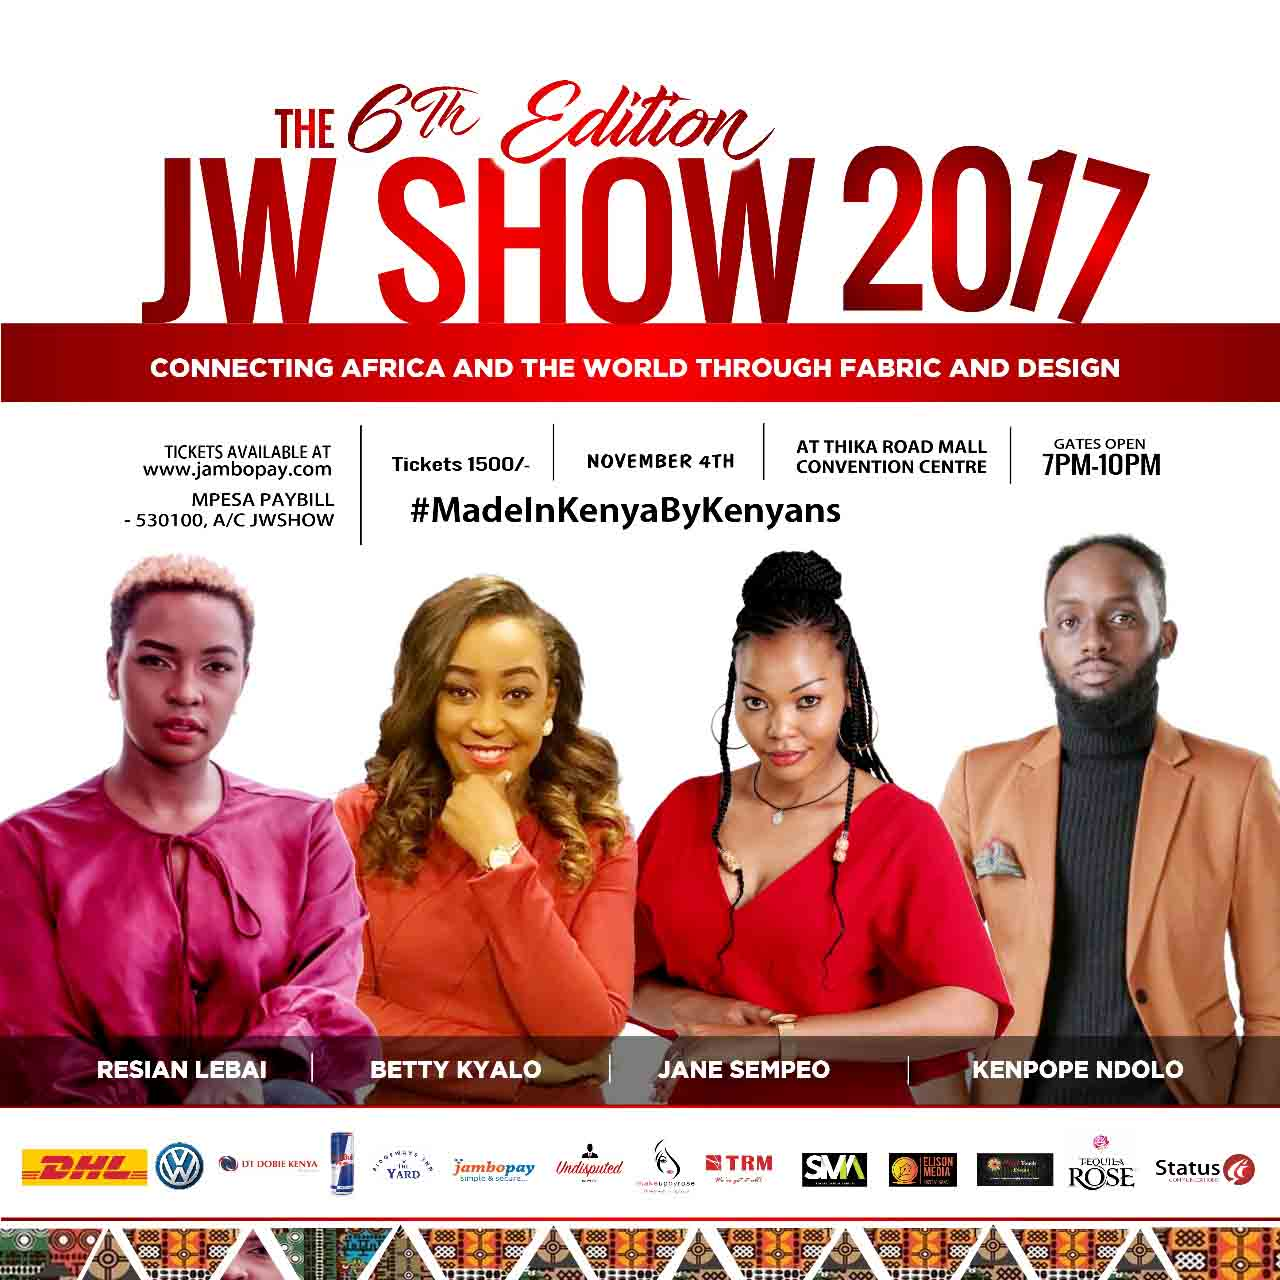 The JW Show has been touted as one of the most marketed fashion shows in Kenya this year!